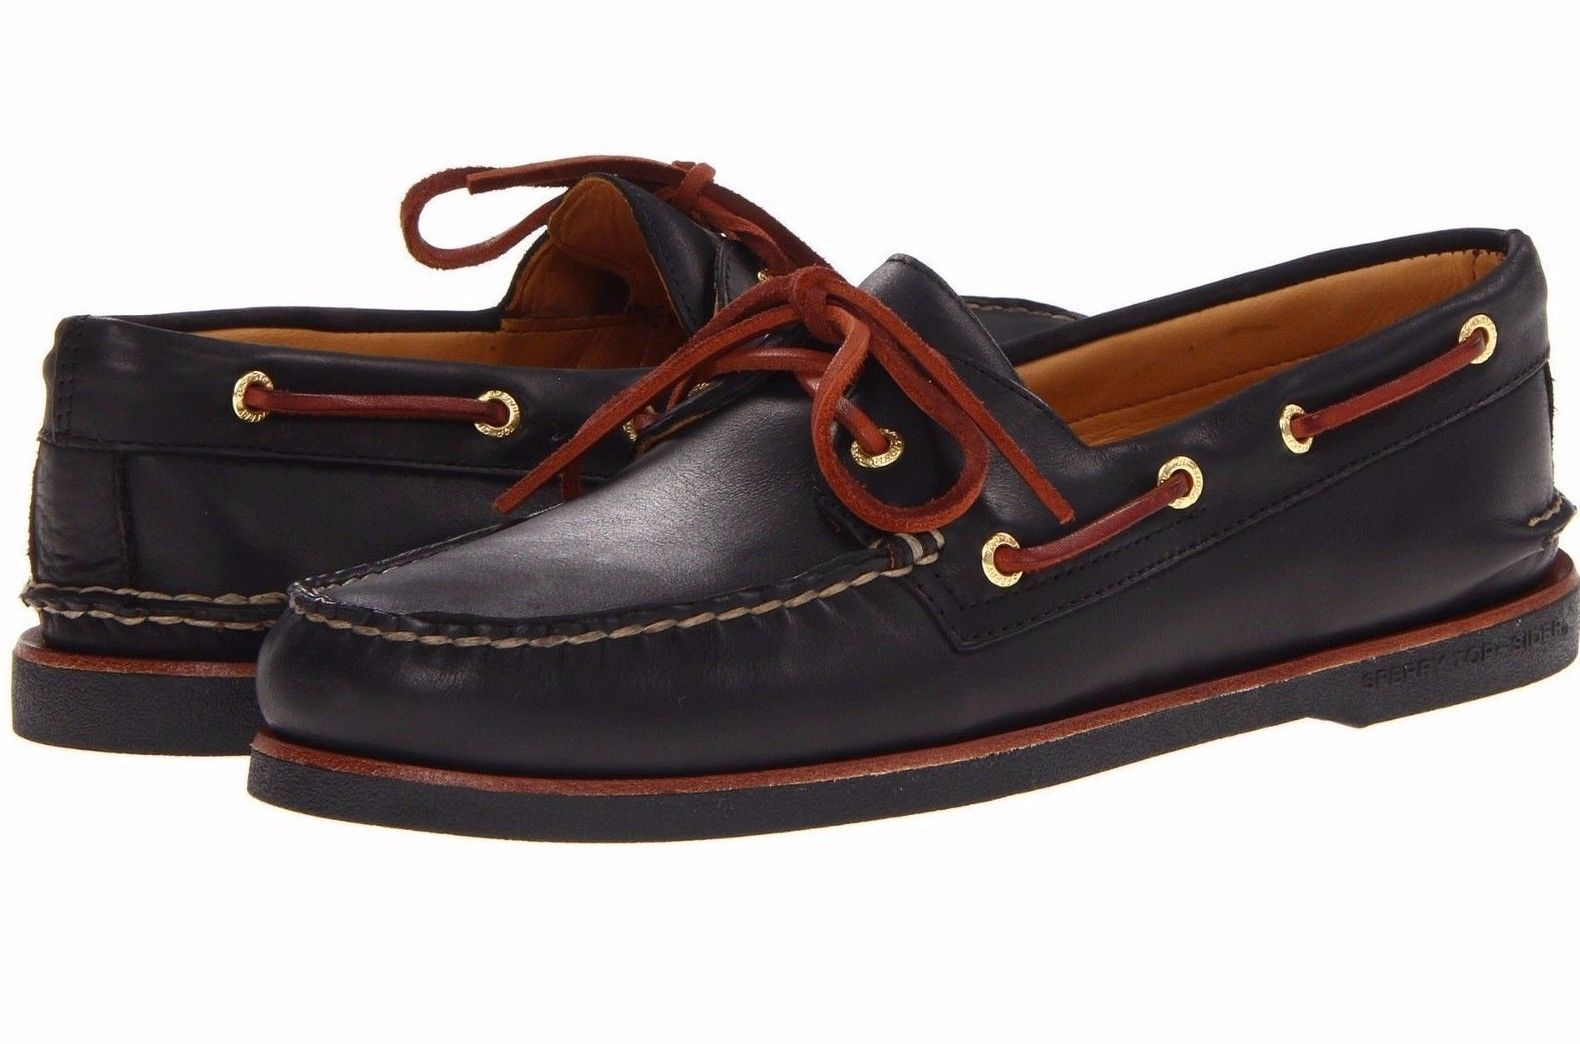 SPERRY TOP-SIDER men GOLD CUP A/O 2-Eye BOAT SHOES Lace